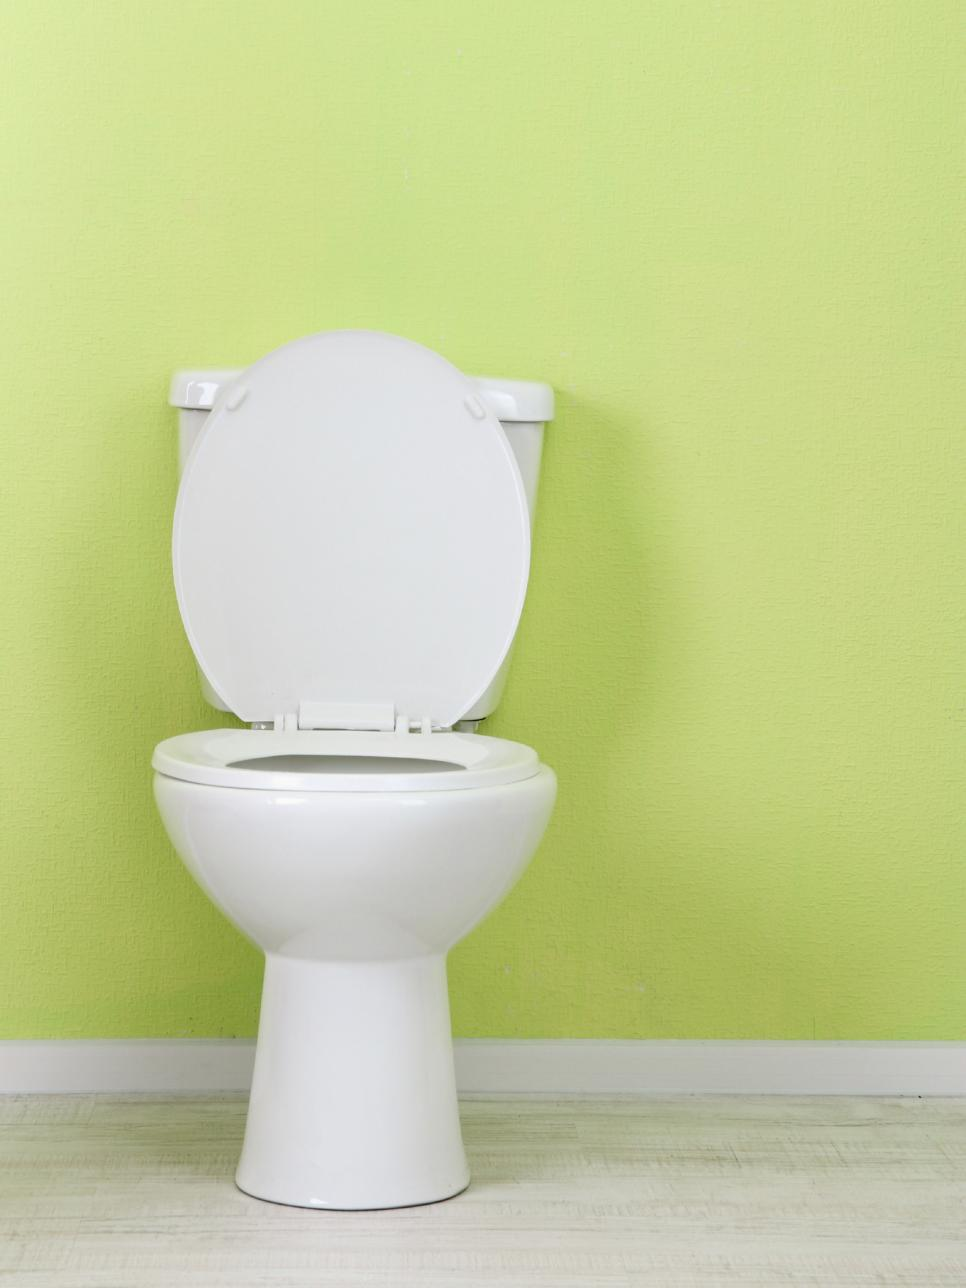 Toilet Against Green Wall